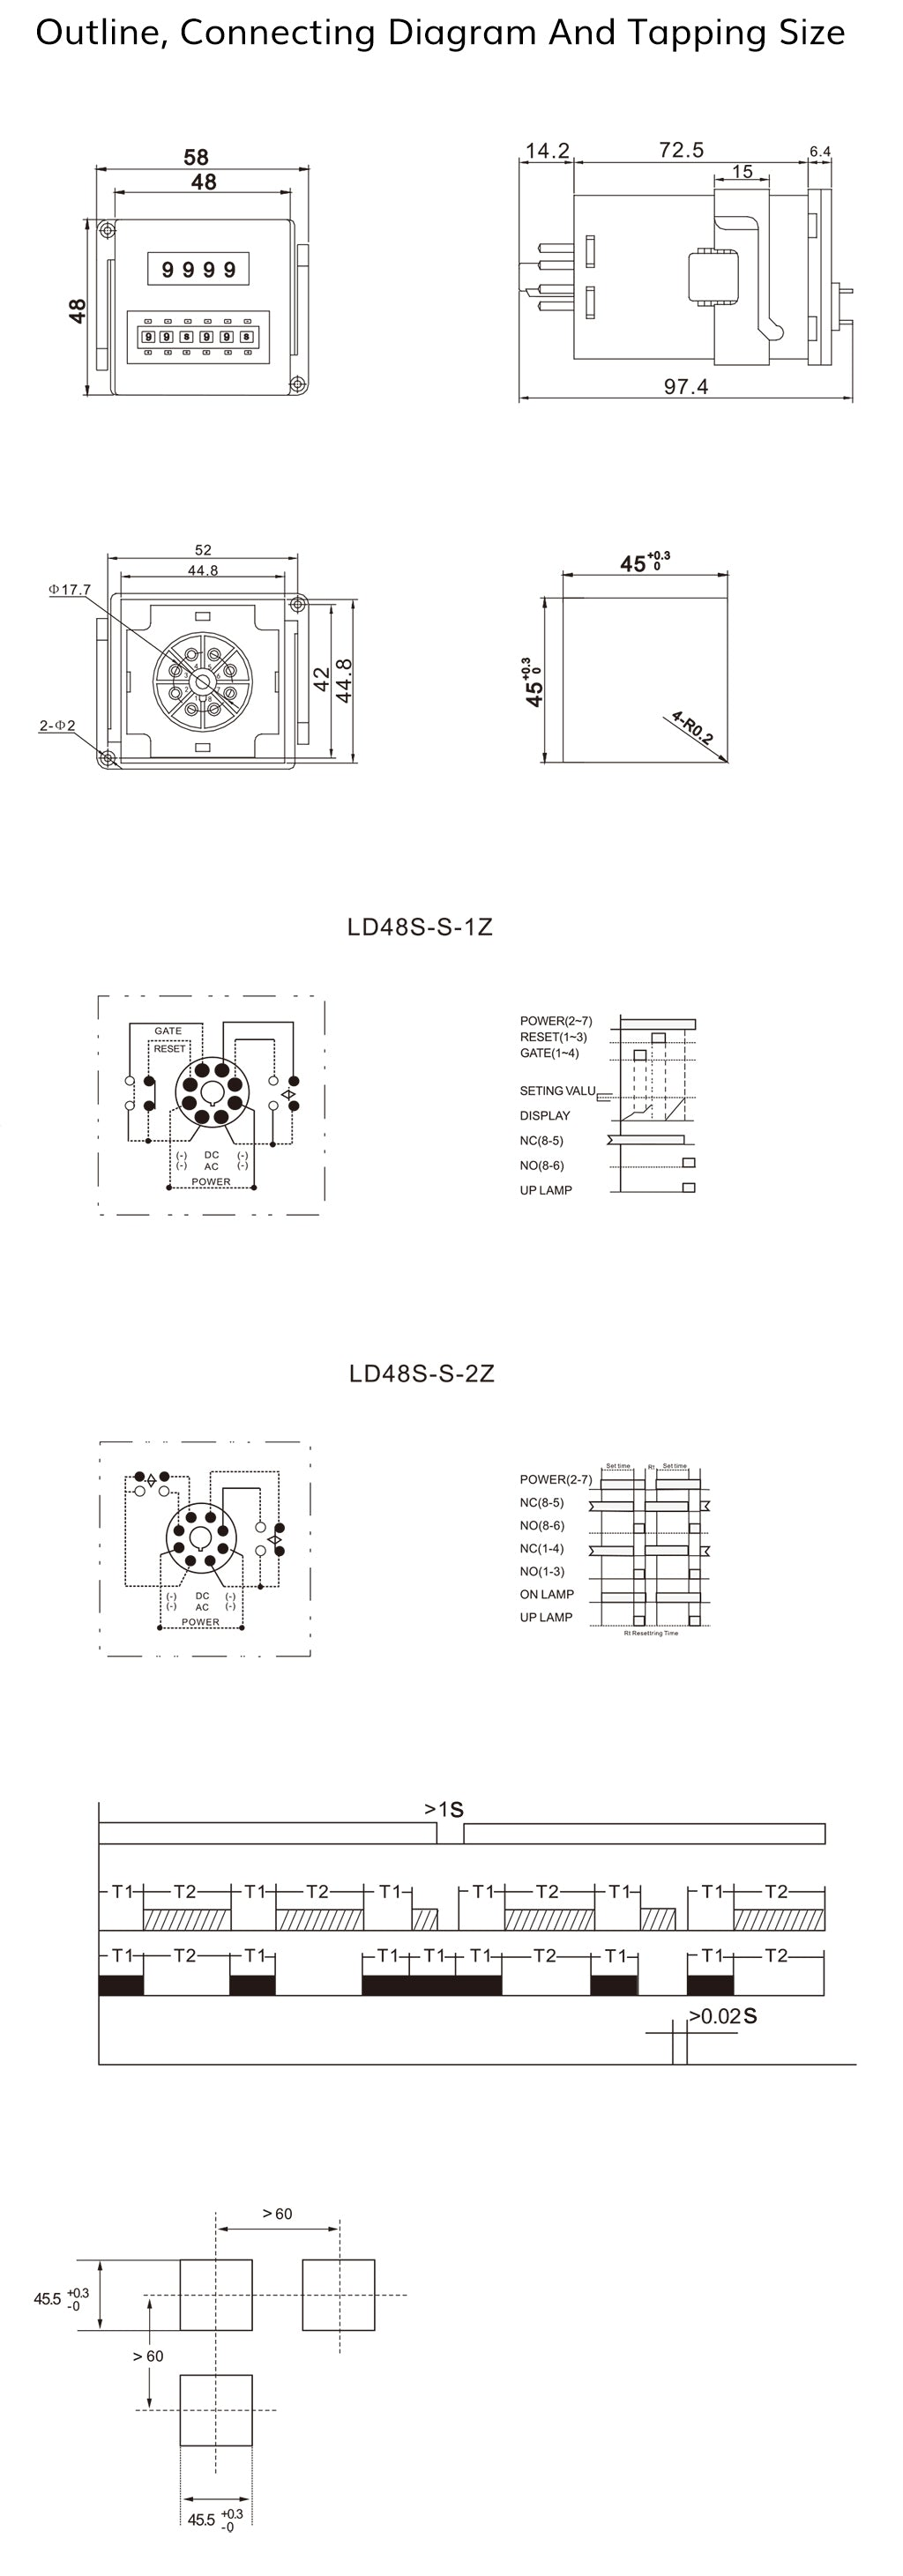 Outline, Connecting Diagram And Tapping Size-LD48S-S